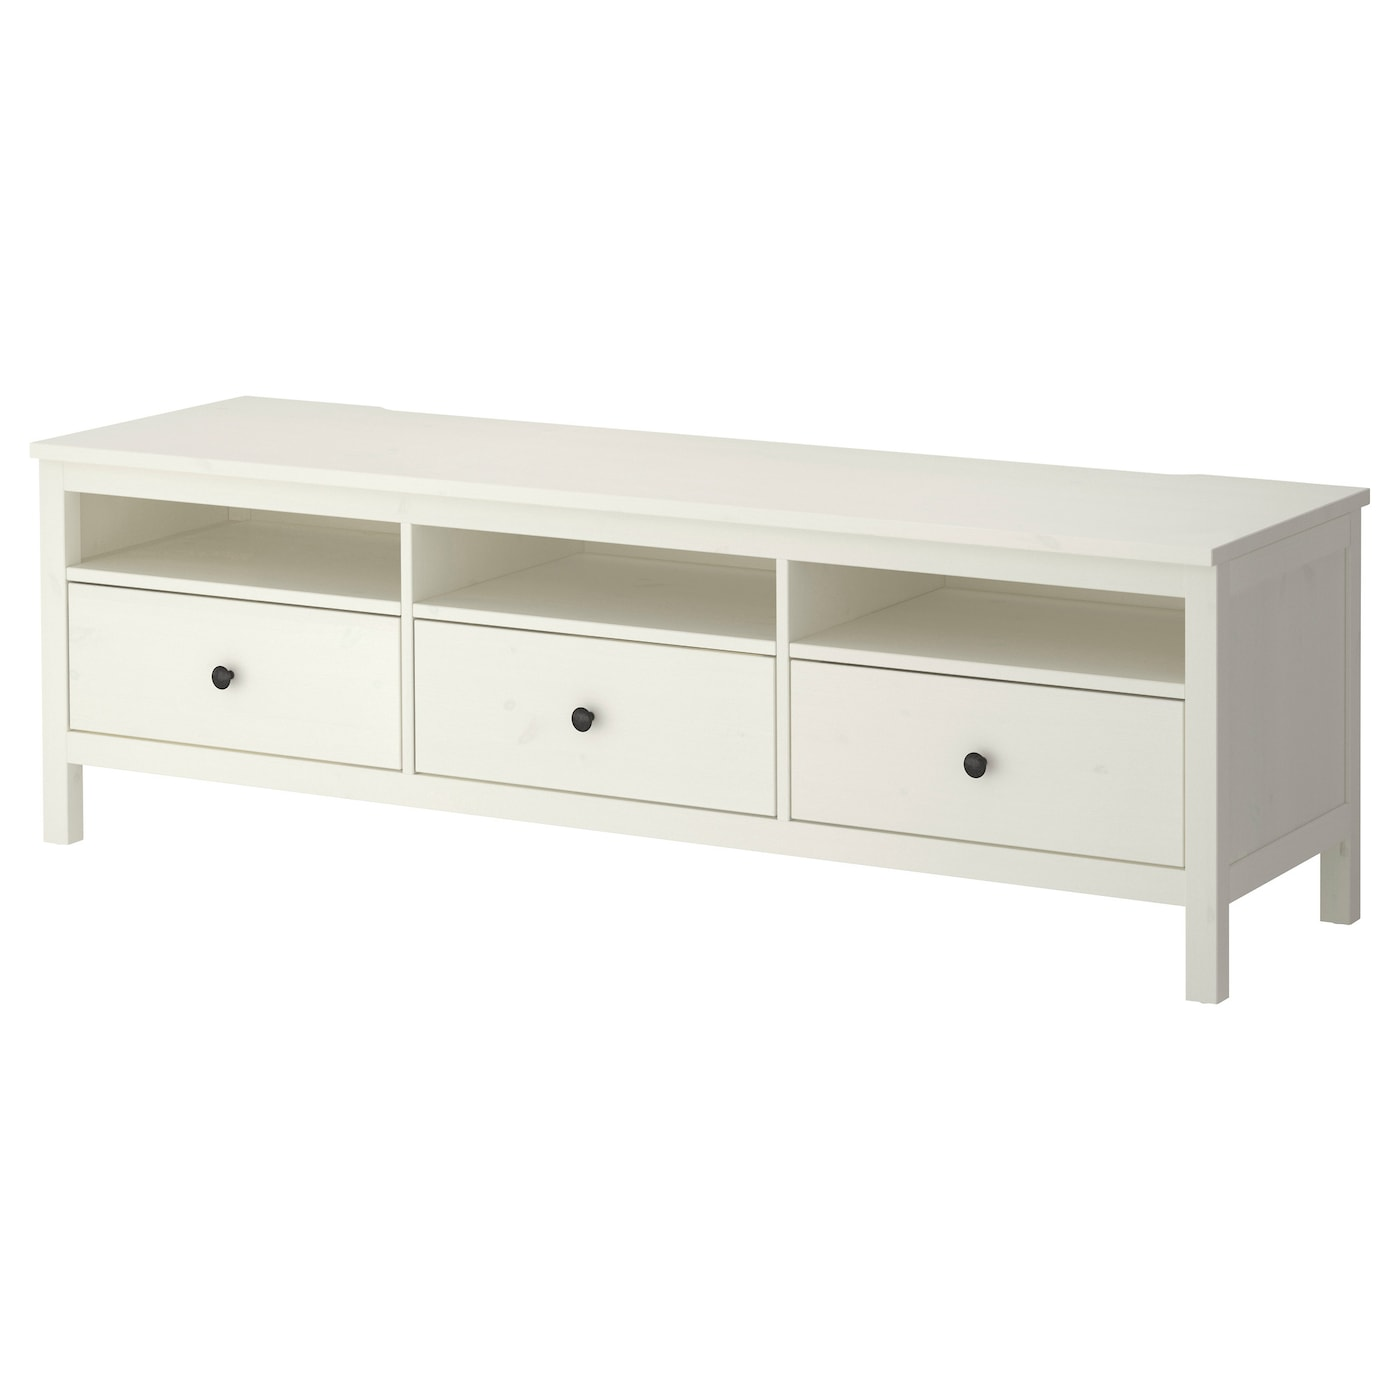 hemnes tv bench white stain 183x47 cm ikea. Black Bedroom Furniture Sets. Home Design Ideas